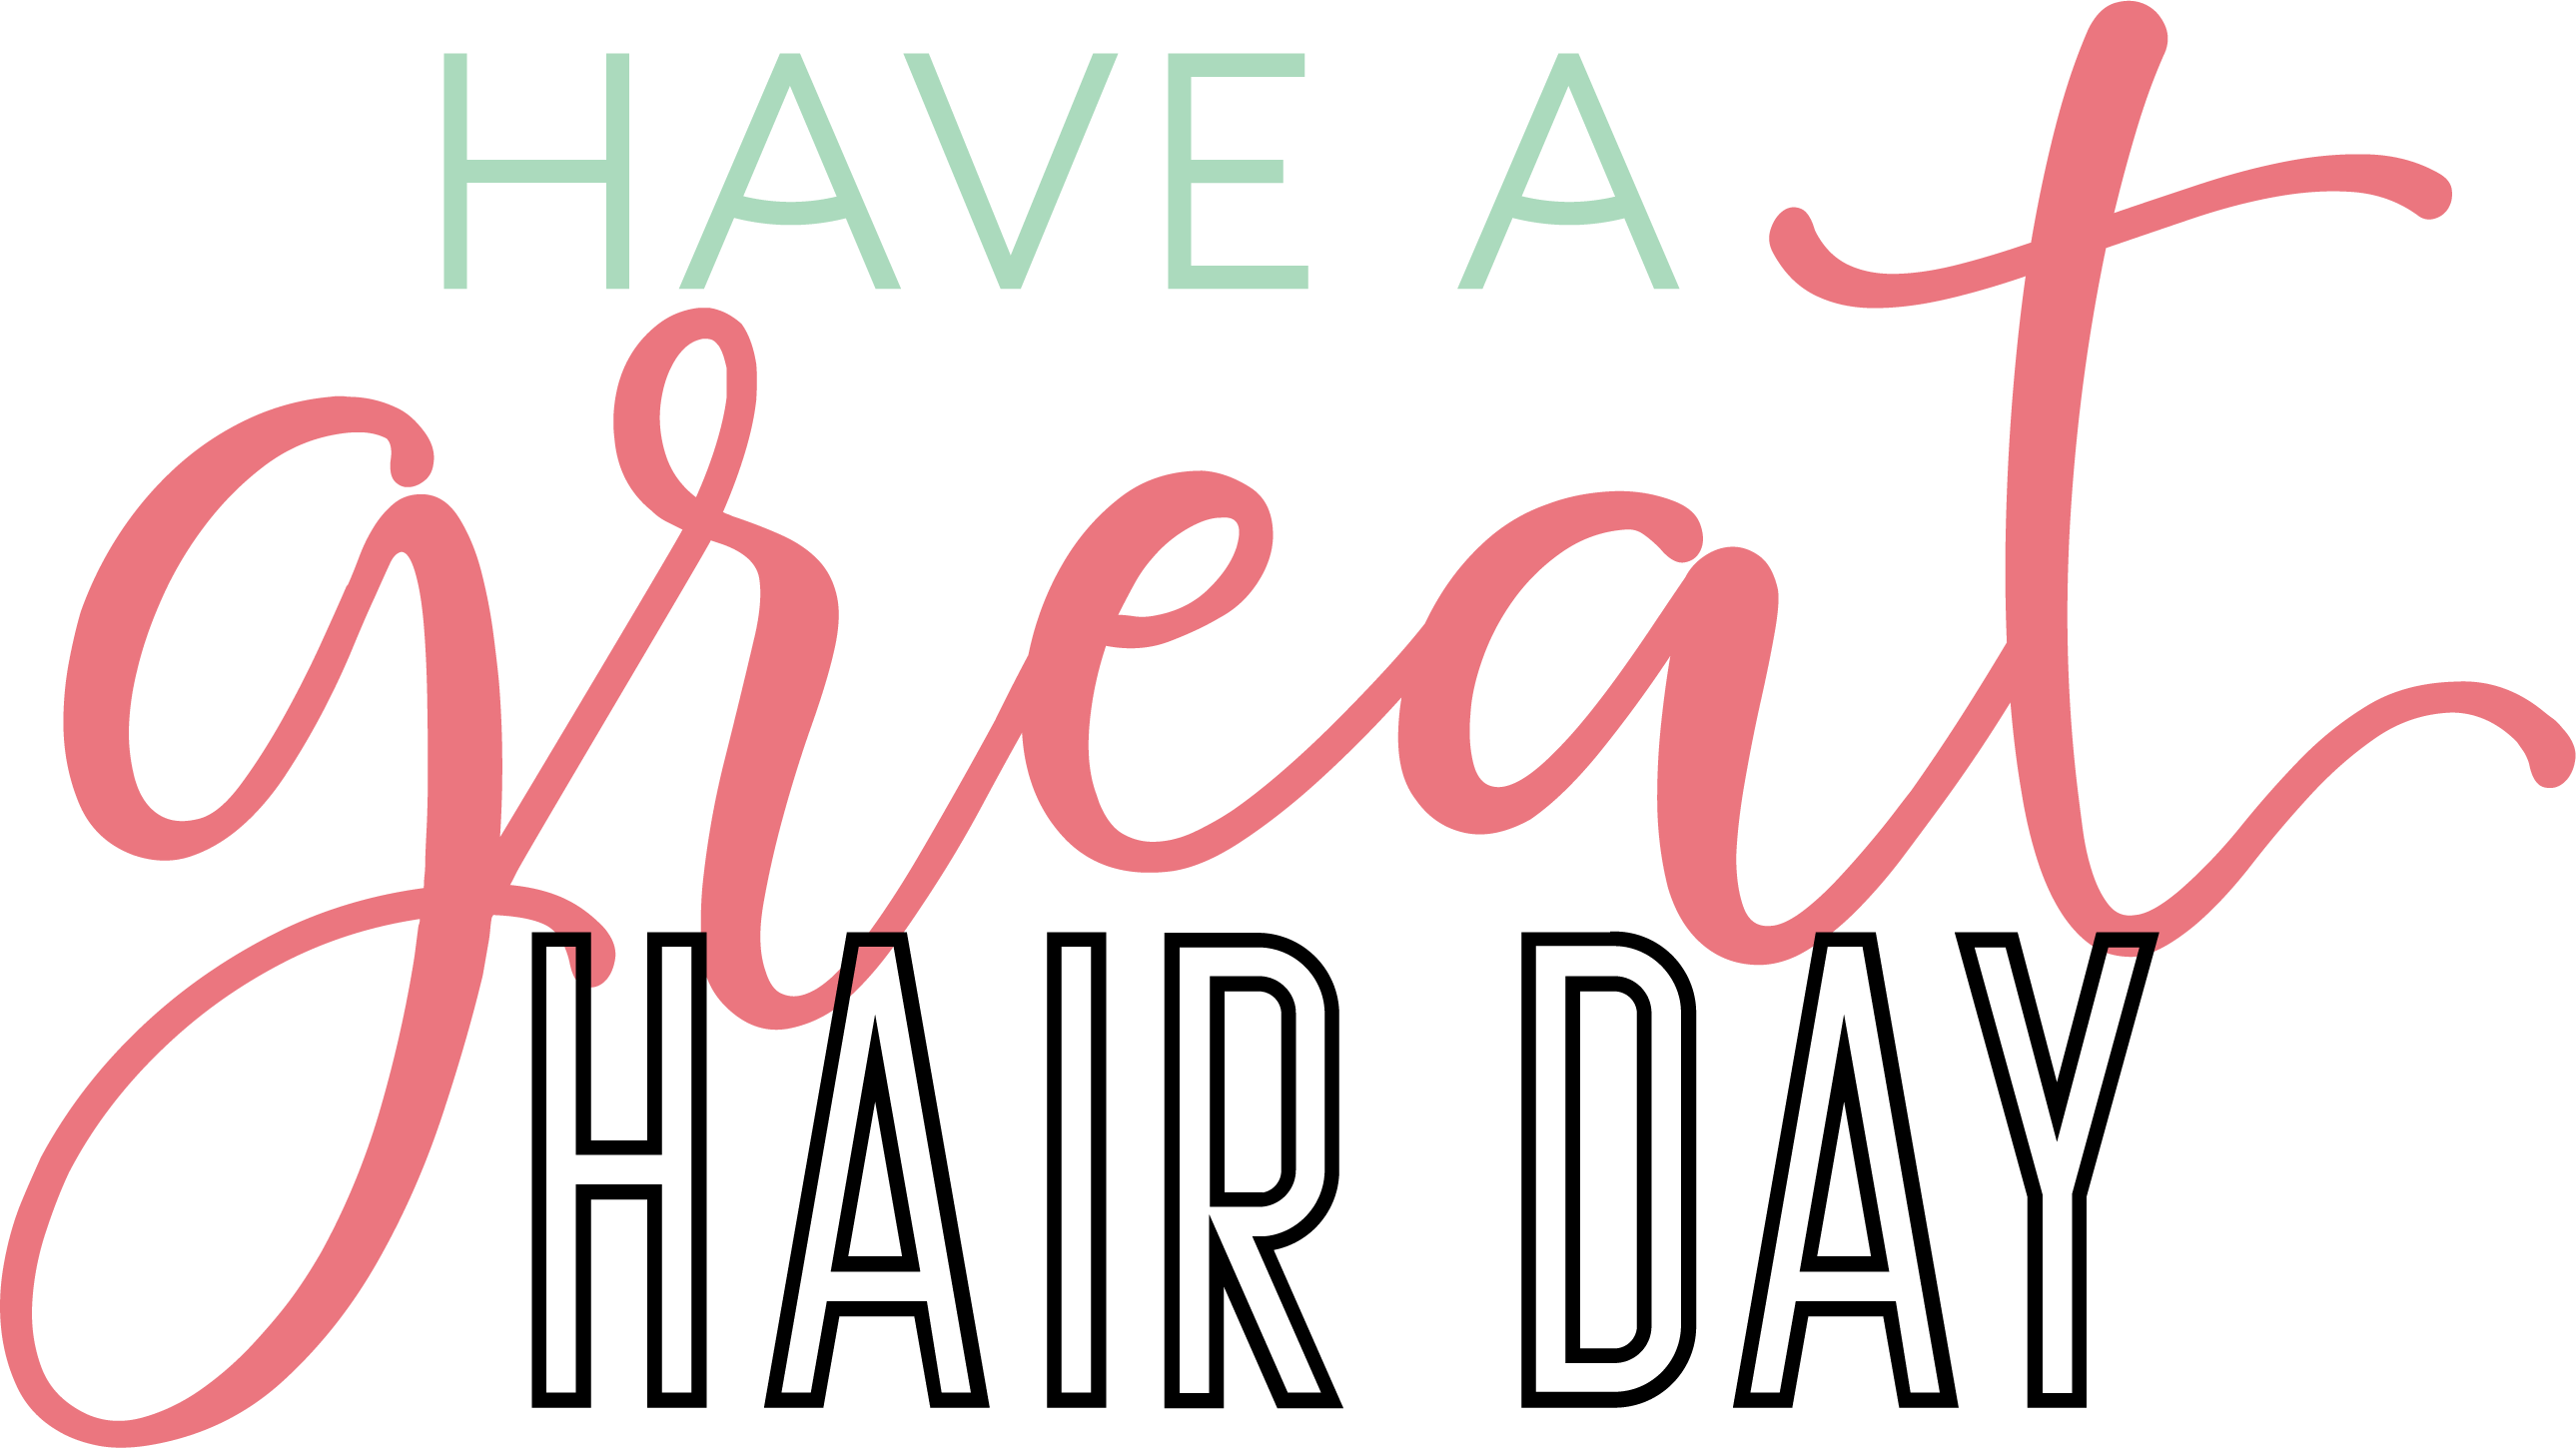 Have A Great Hair Day SVG Cut File